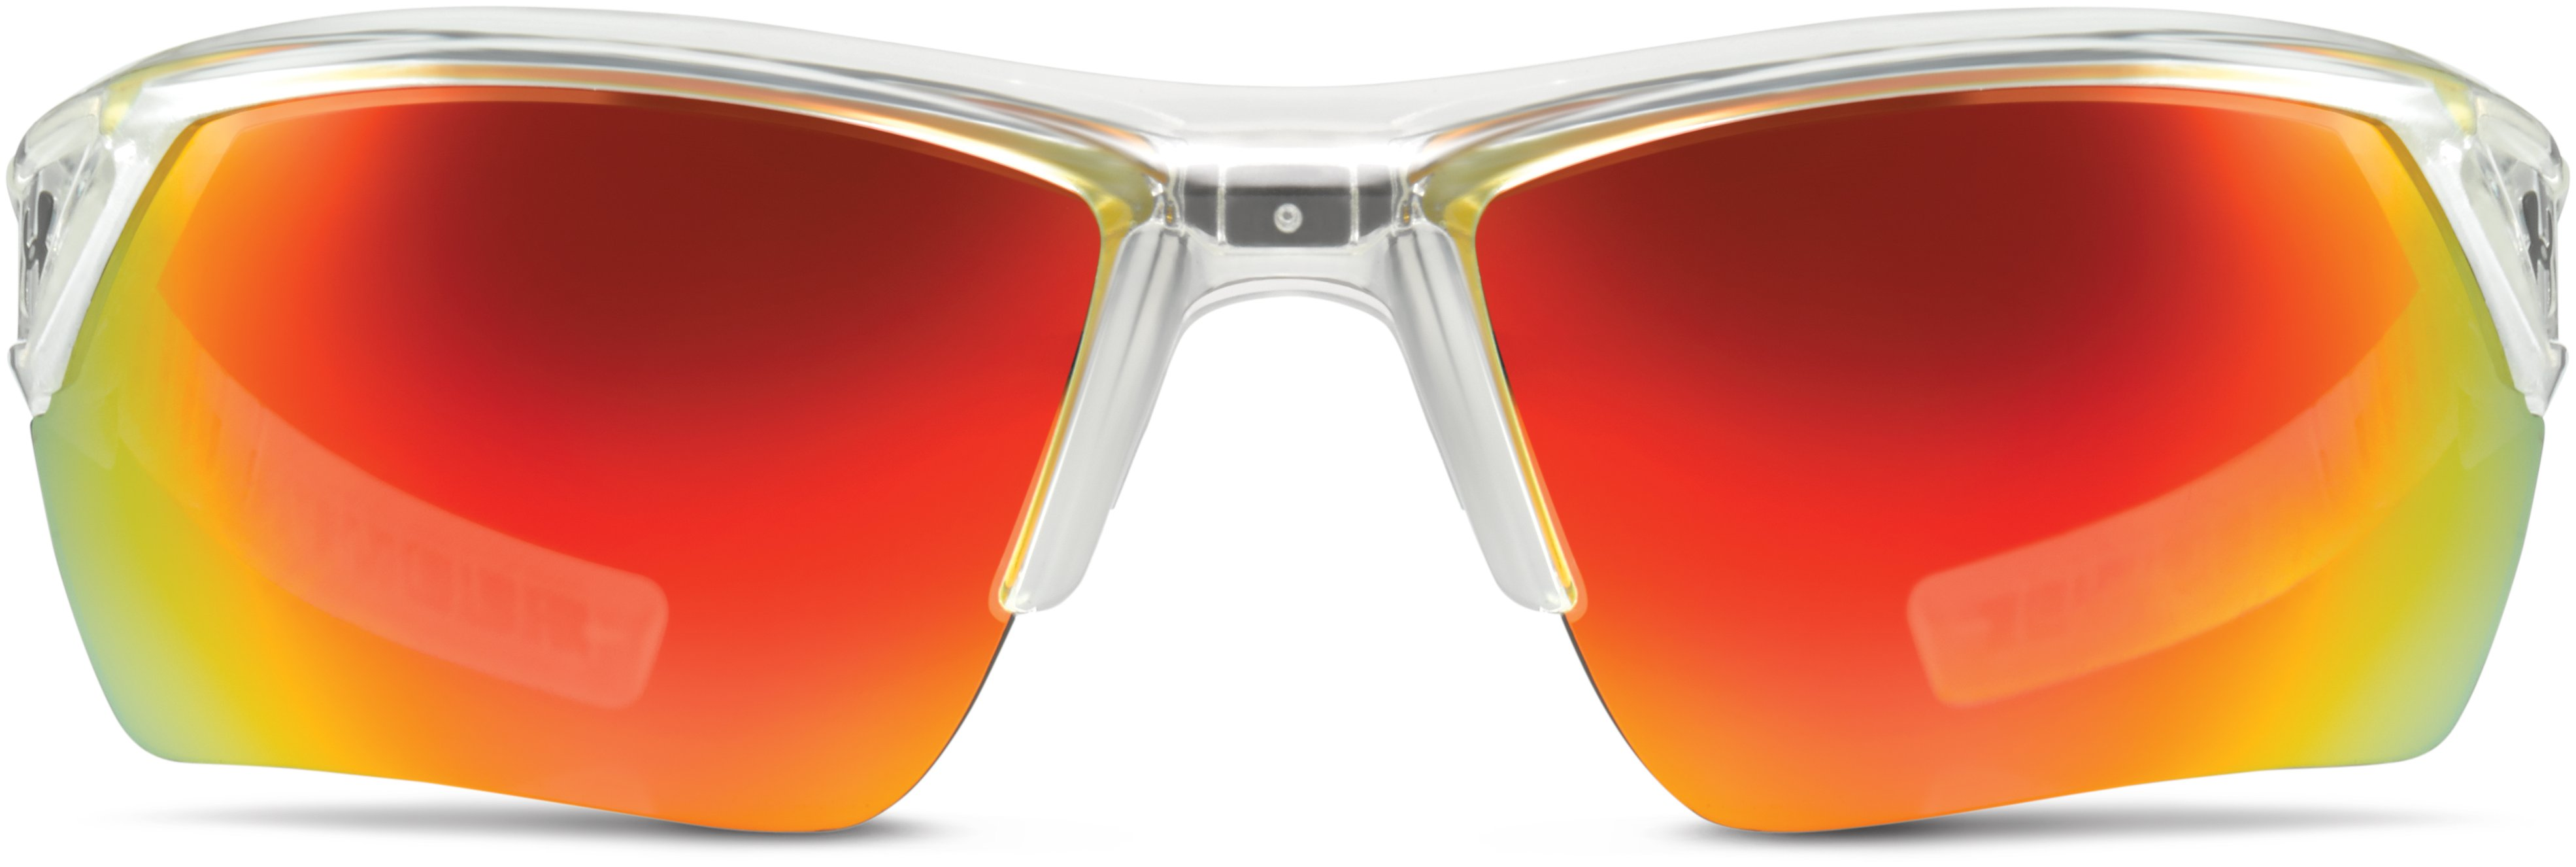 UA Igniter 2.0 Sunglasses, SHINY CRYSTAL CLEAR, undefined